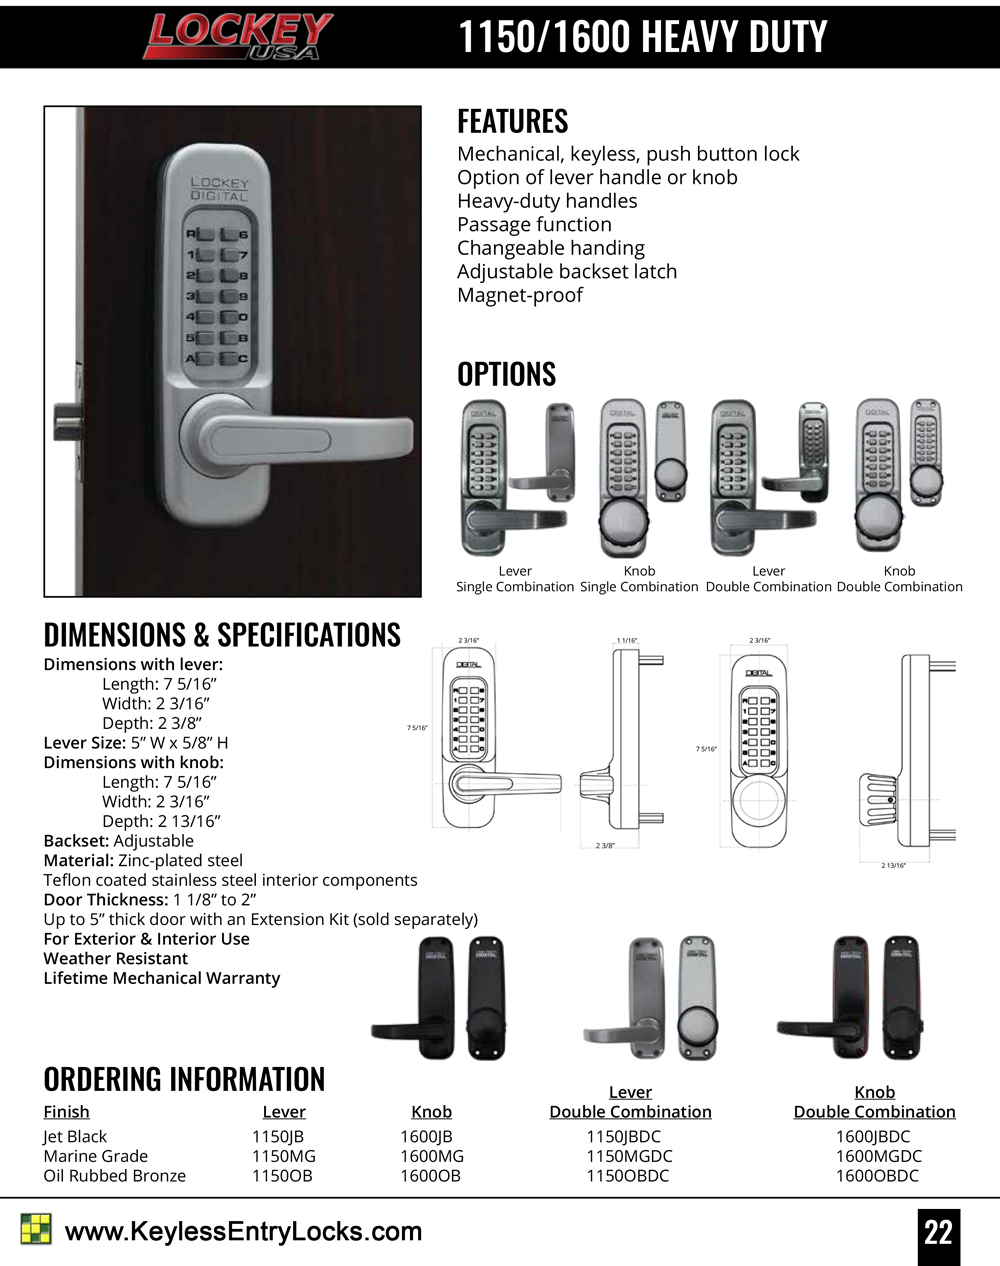 Lockey 1150DC Double-Sided Heavy-Duty Lever-Handle Latchbolt Keypad Lock